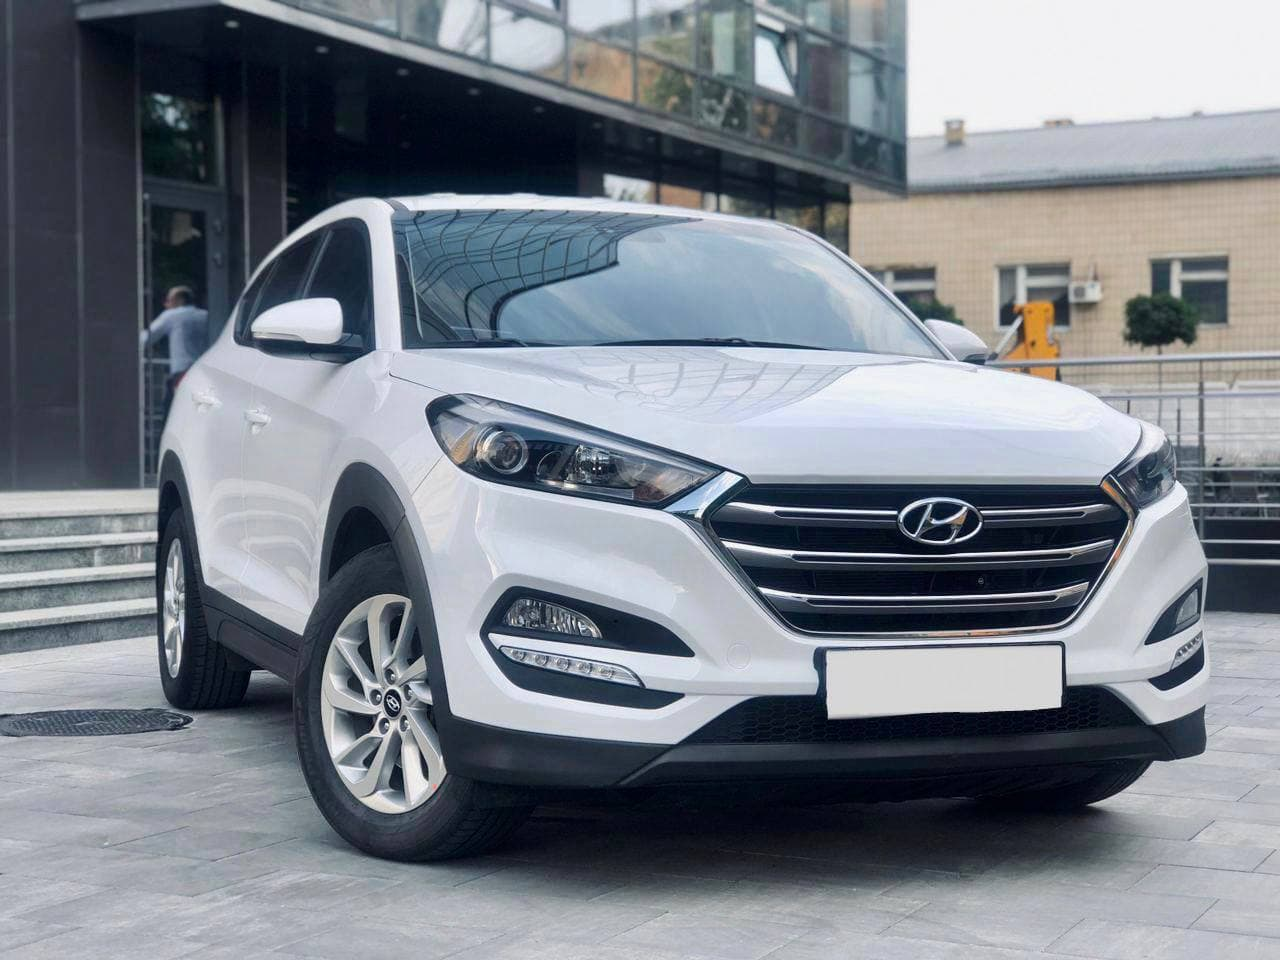 Rent a car Hyundai Tucson 2018 in Kyiv - Megarent